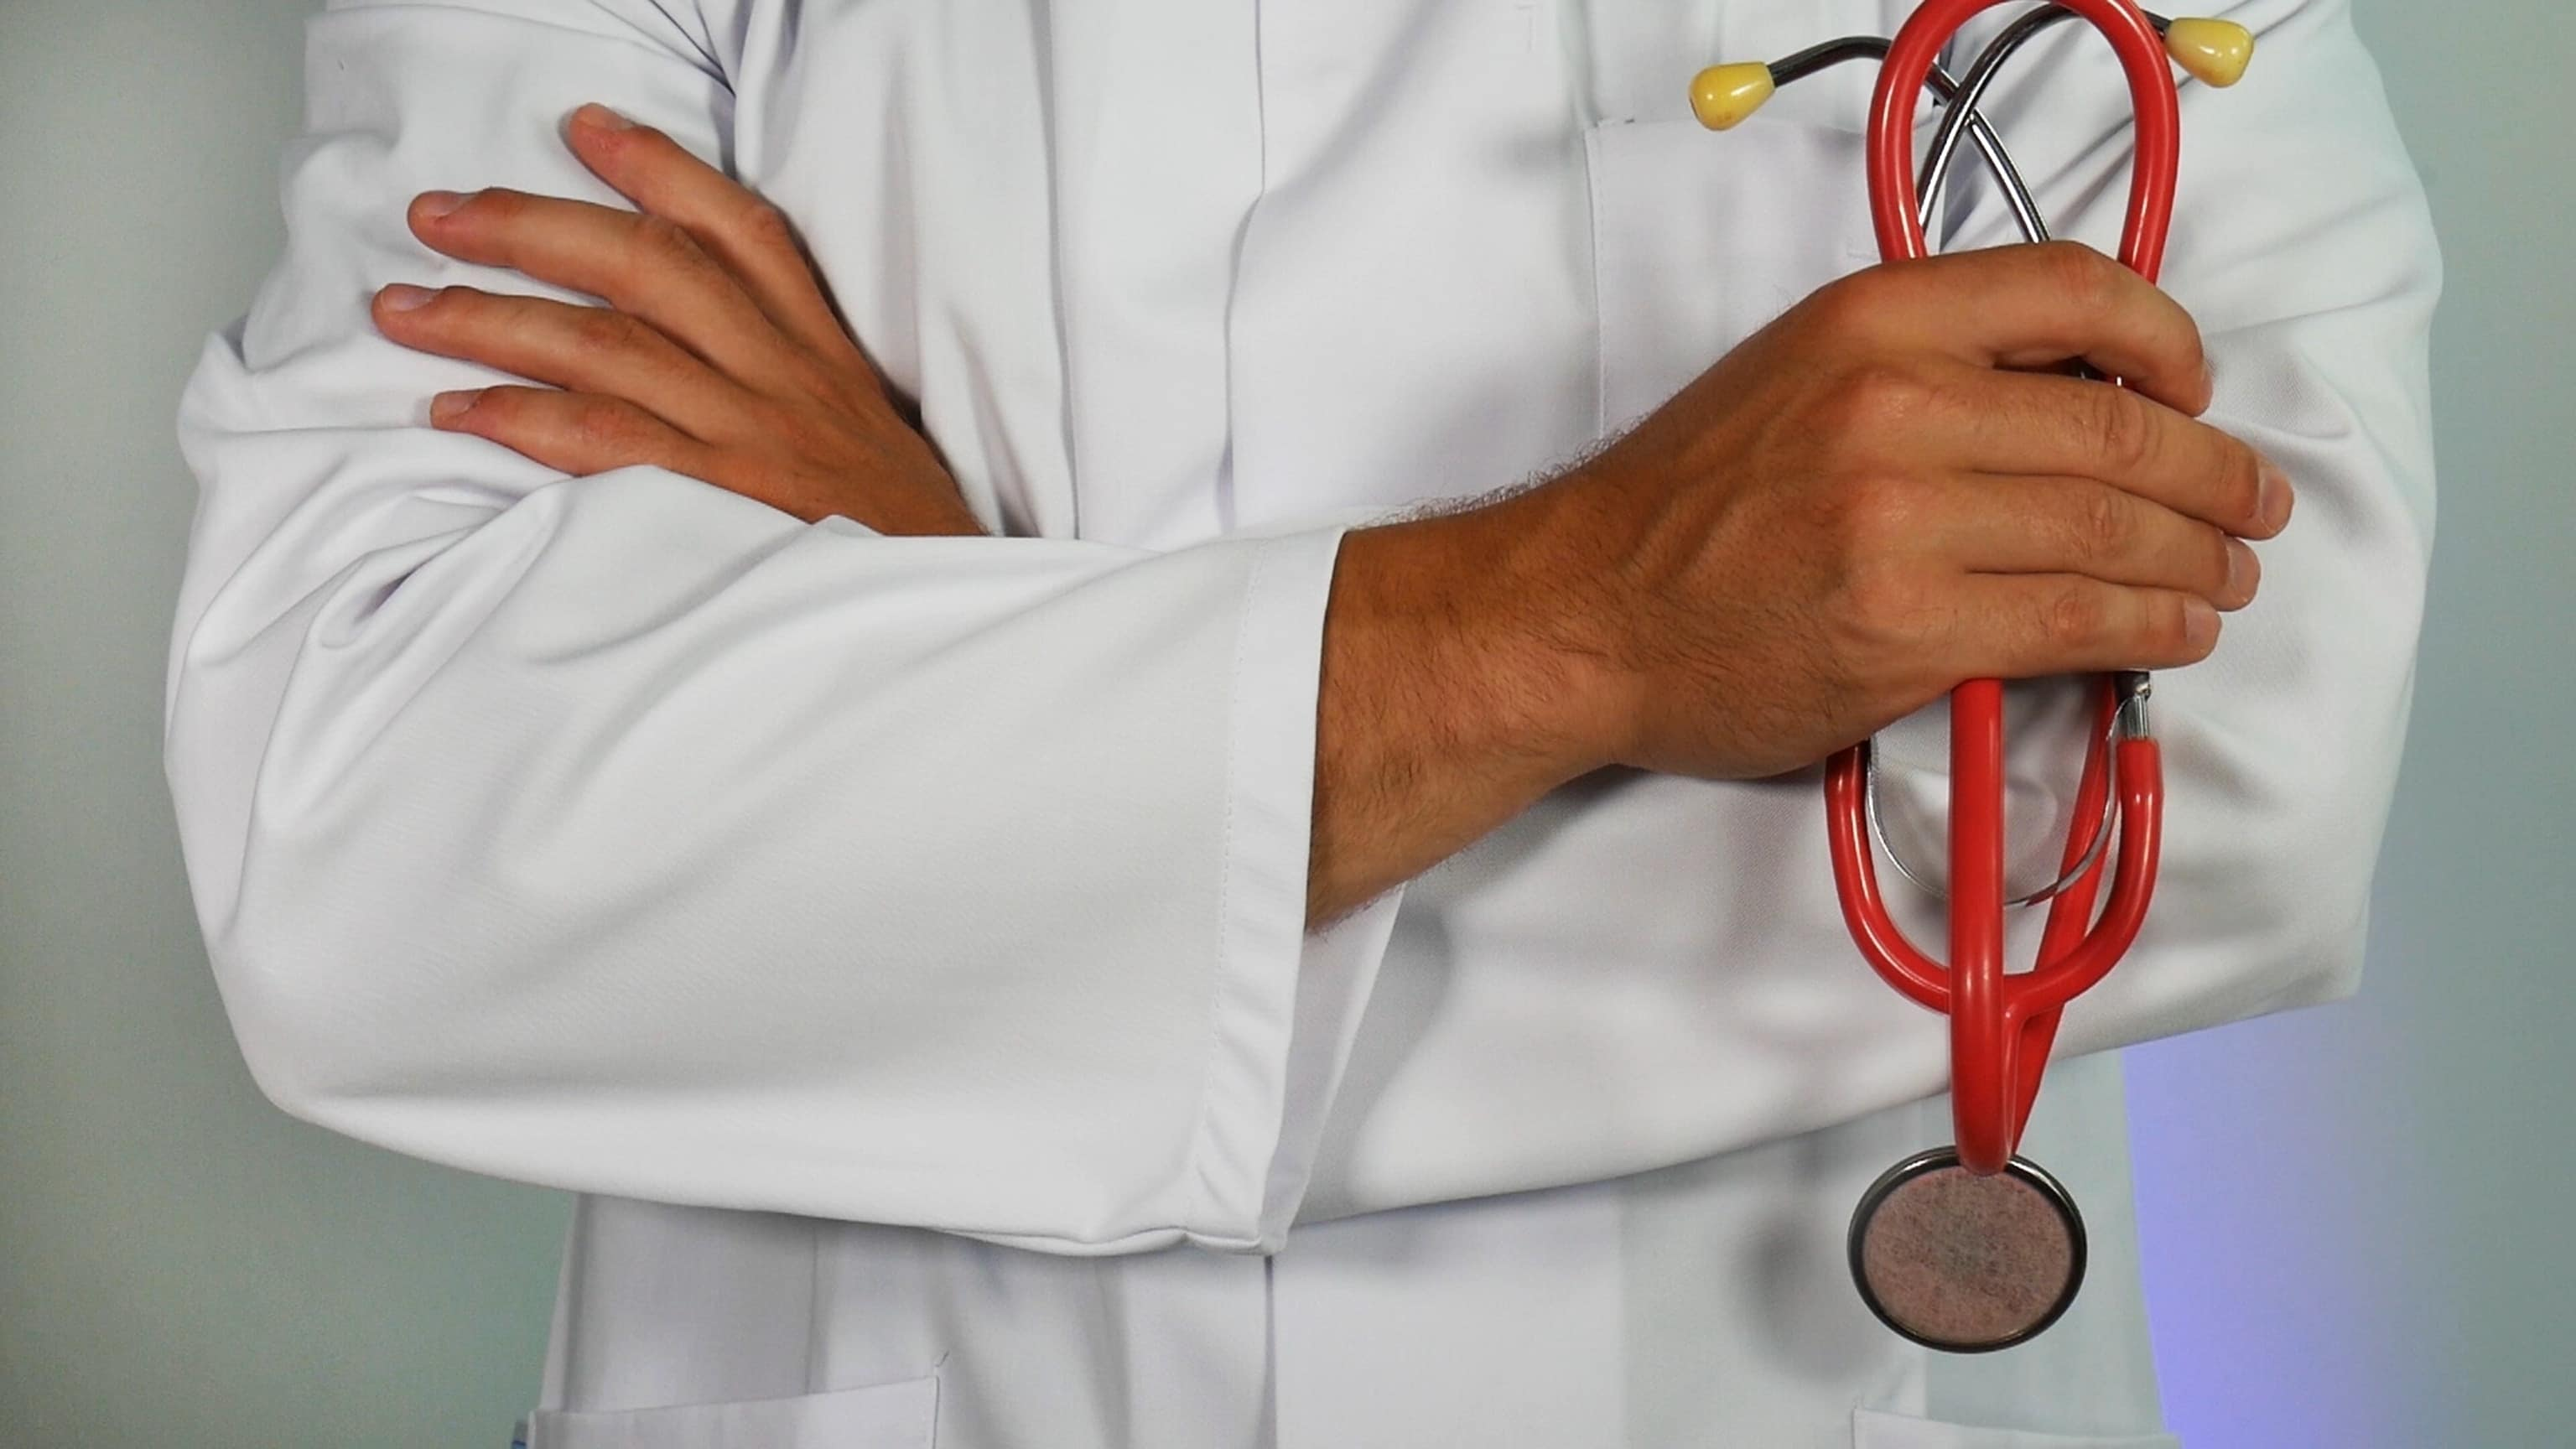 Doctor wearing a white coat holding a stethoscope